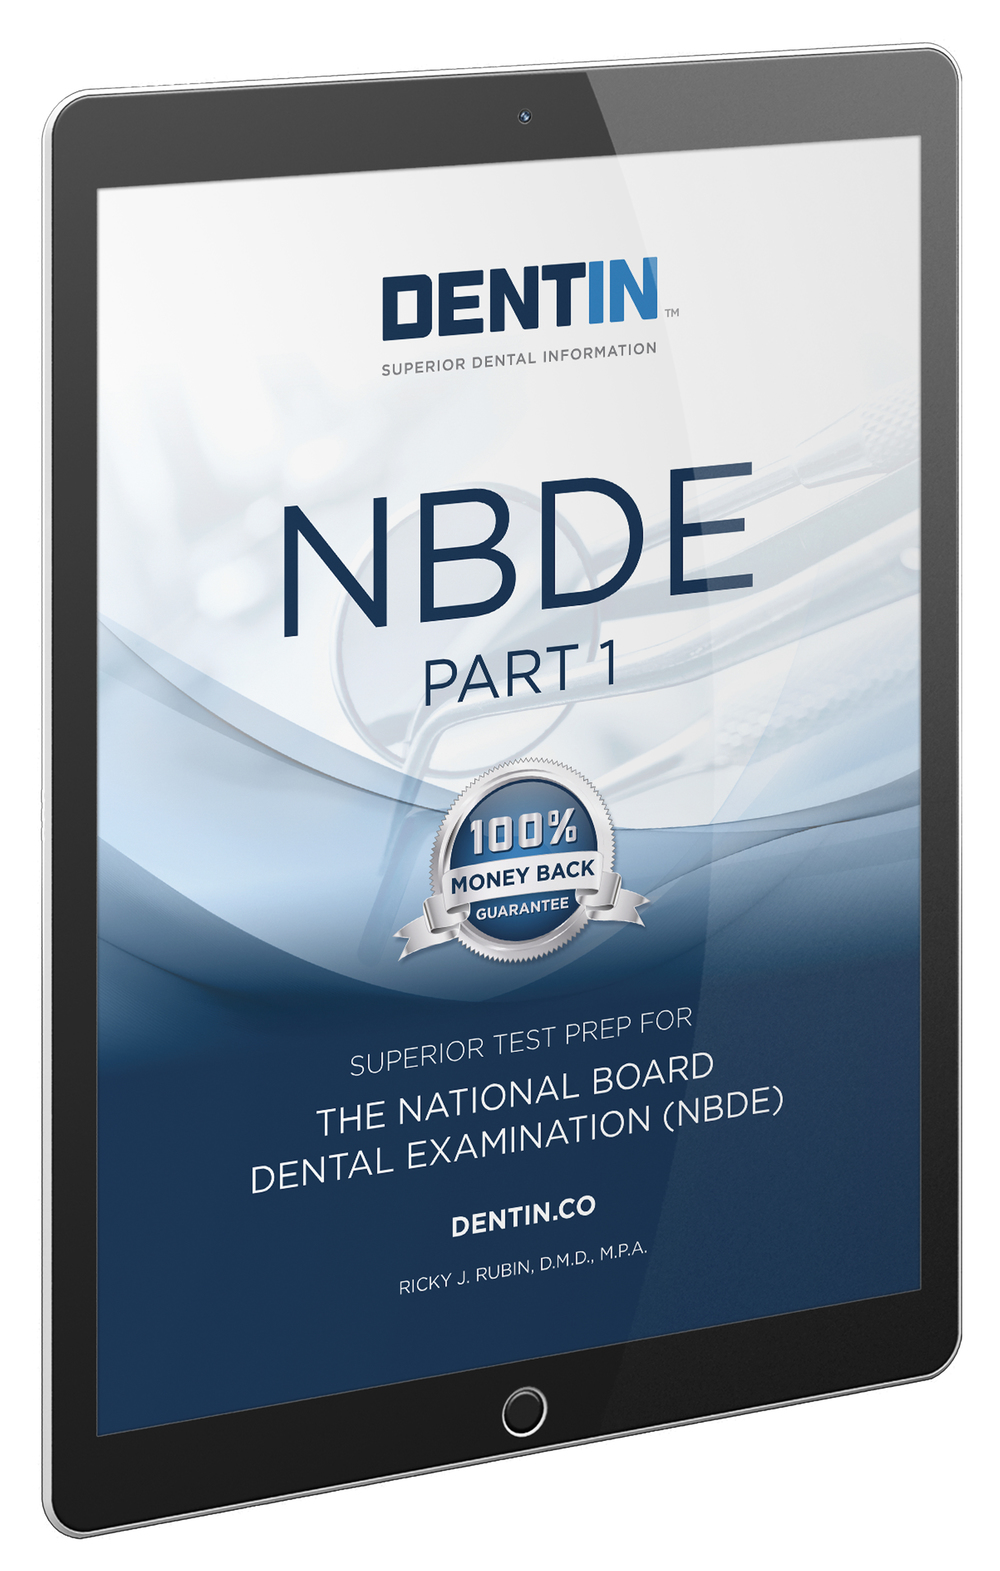 nbde part 1 Dental decks for nbde part 1 (2013-2014) nbde part 1 - the quick & dirty comprehensive review: volume 25: gross anatomy practice questions (nbde part 1 quick & dirty comprehensive review series) mar 30, 2017.